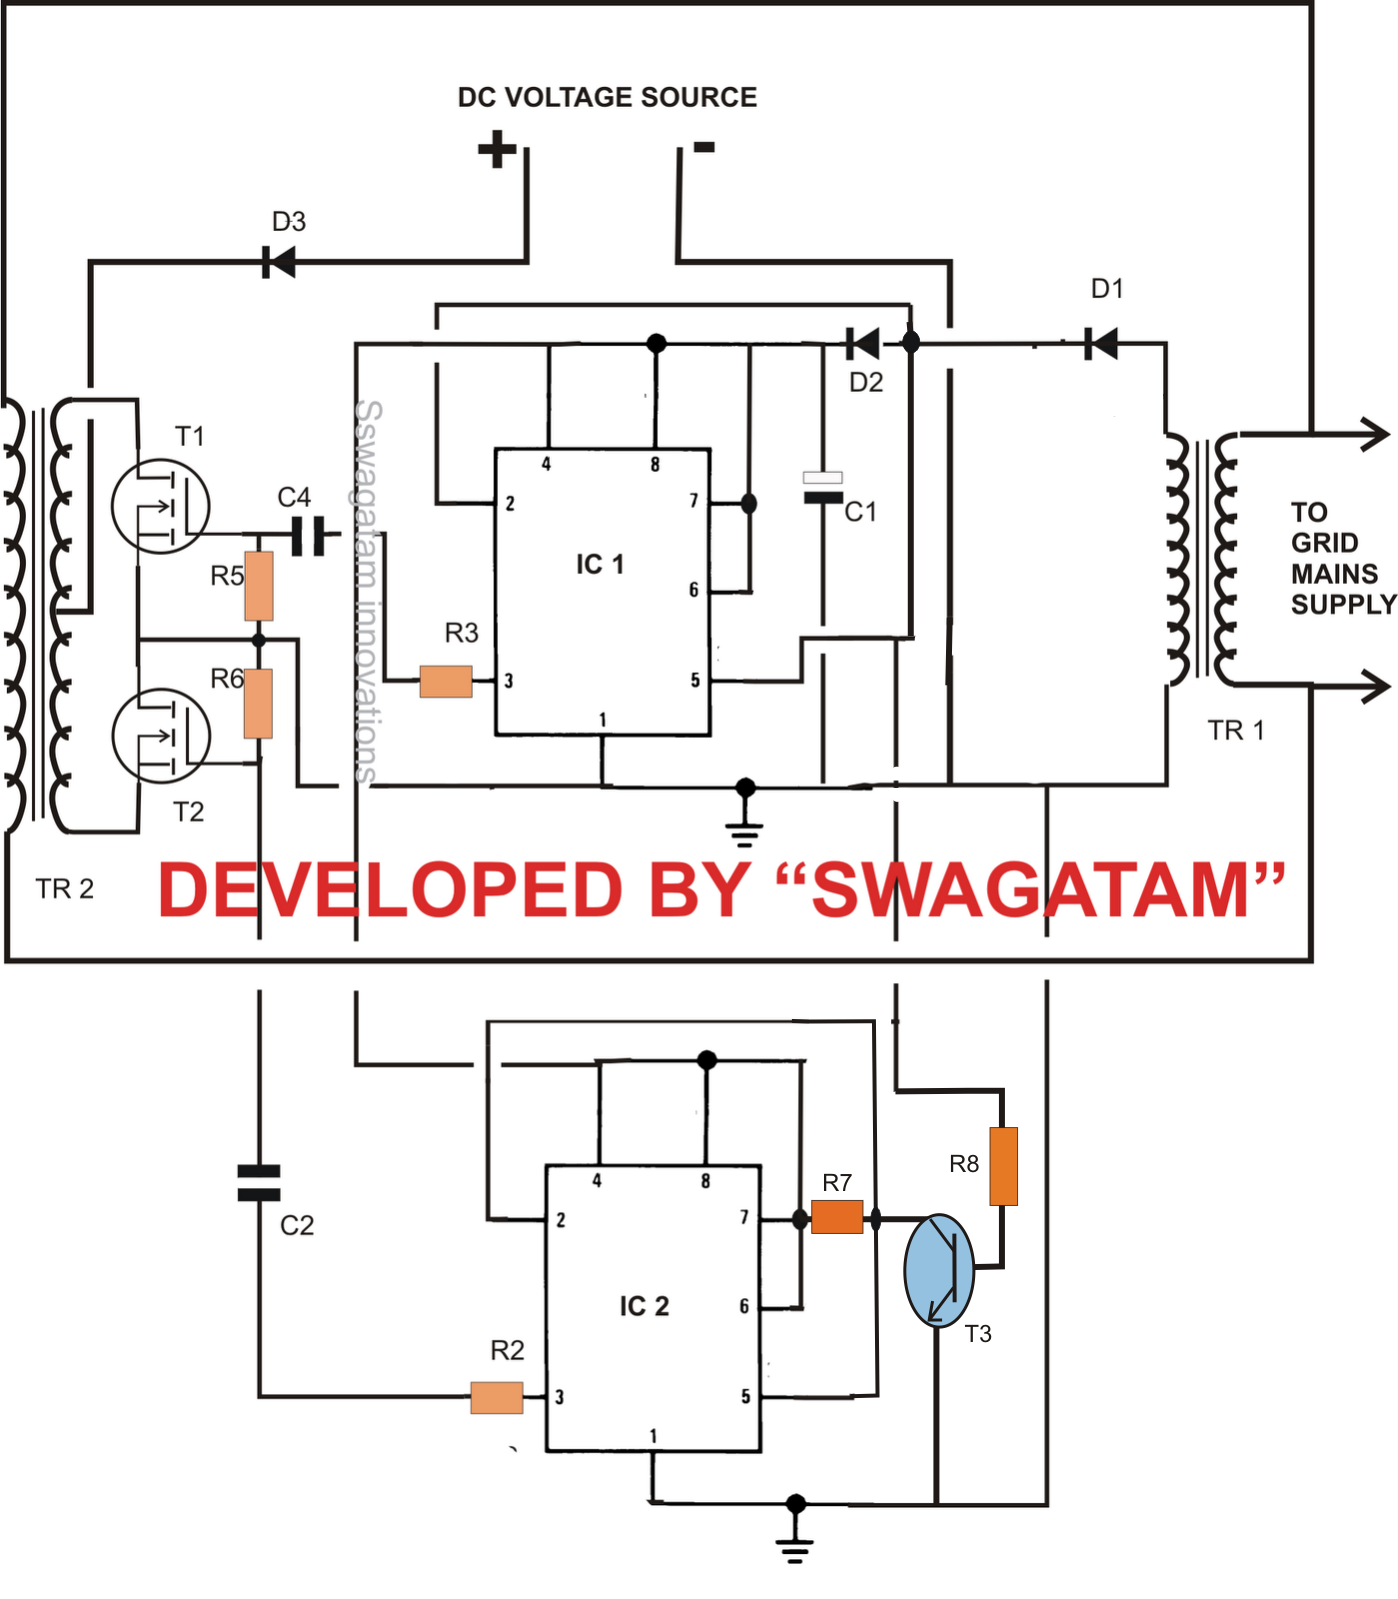 Solar Inverter Free Circuit Diagram Voltage Source Pictures Of